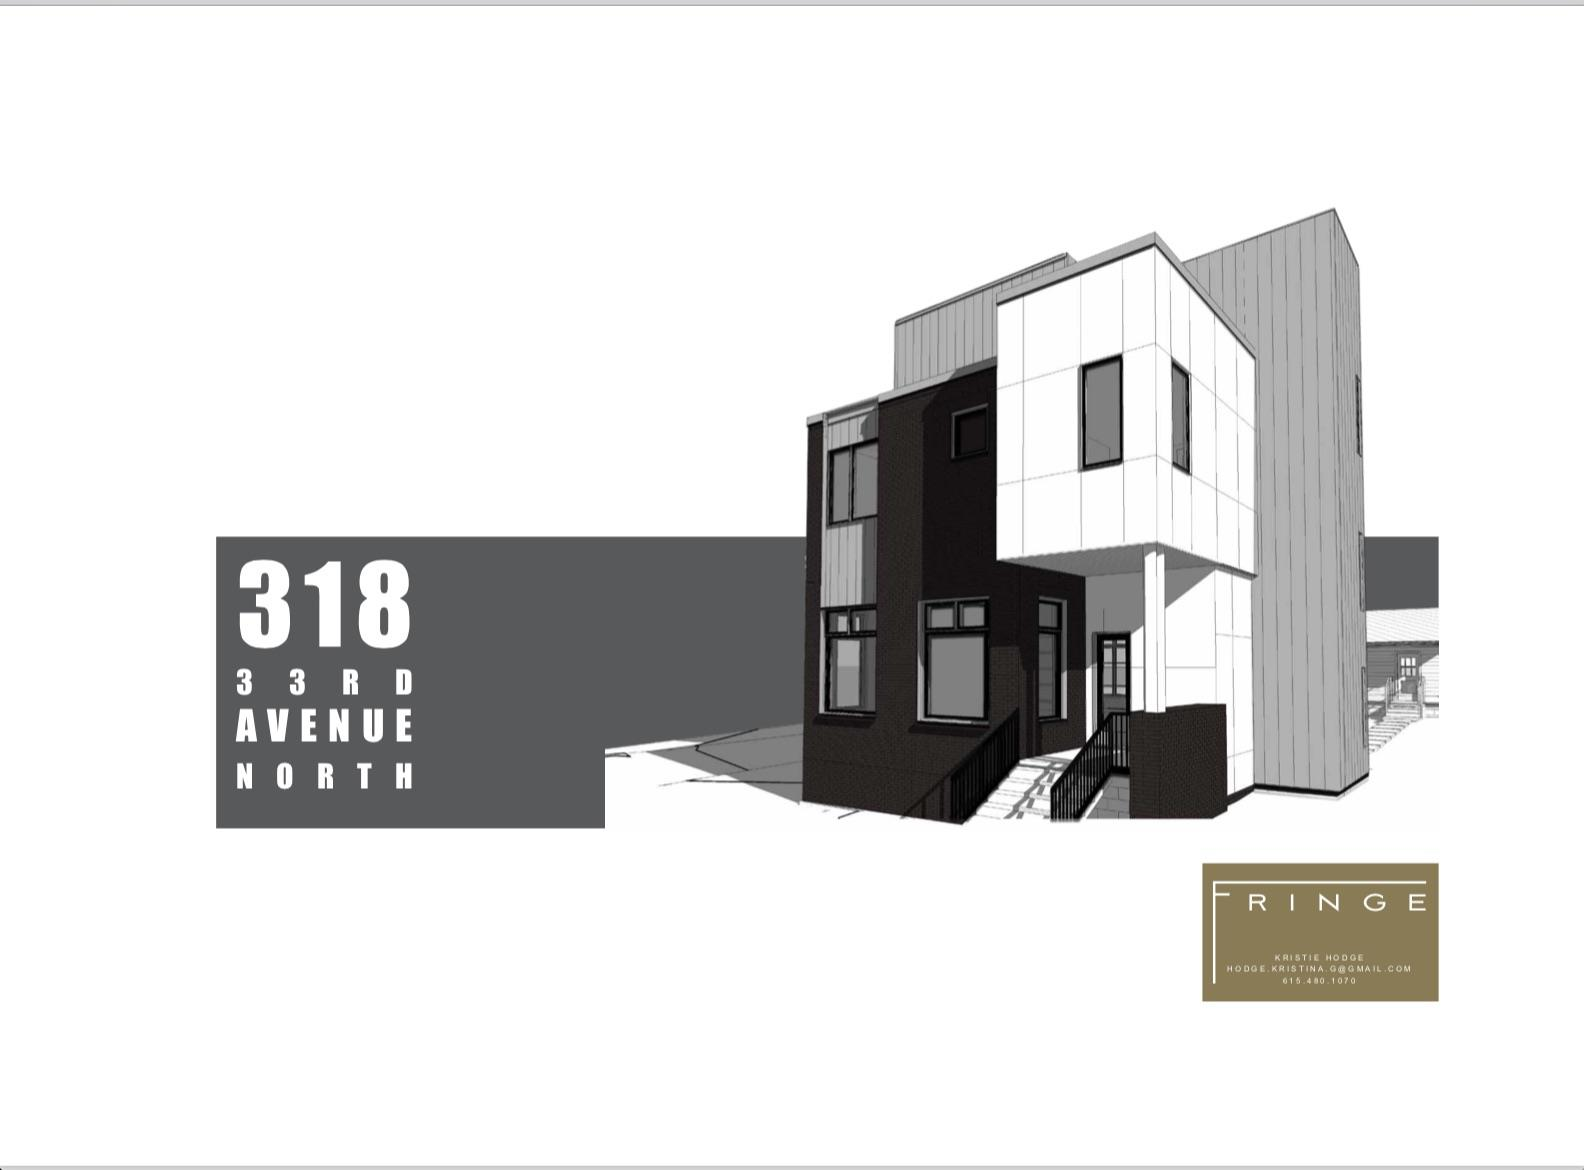 Rare Detached LUXE Contemporary NEW Construction. Modern Design & High End Finishes in an Open Layout. Media Room & 2 Rooftop Decks w/Sweeping Skyline Views of Downtown. Detached 2-Car Garage. An Entertainer's dream in a unique neighborhood known for its modern architecture & easy access to Downtown Nashville, Vanderbilt, Restaurants & Shopping.